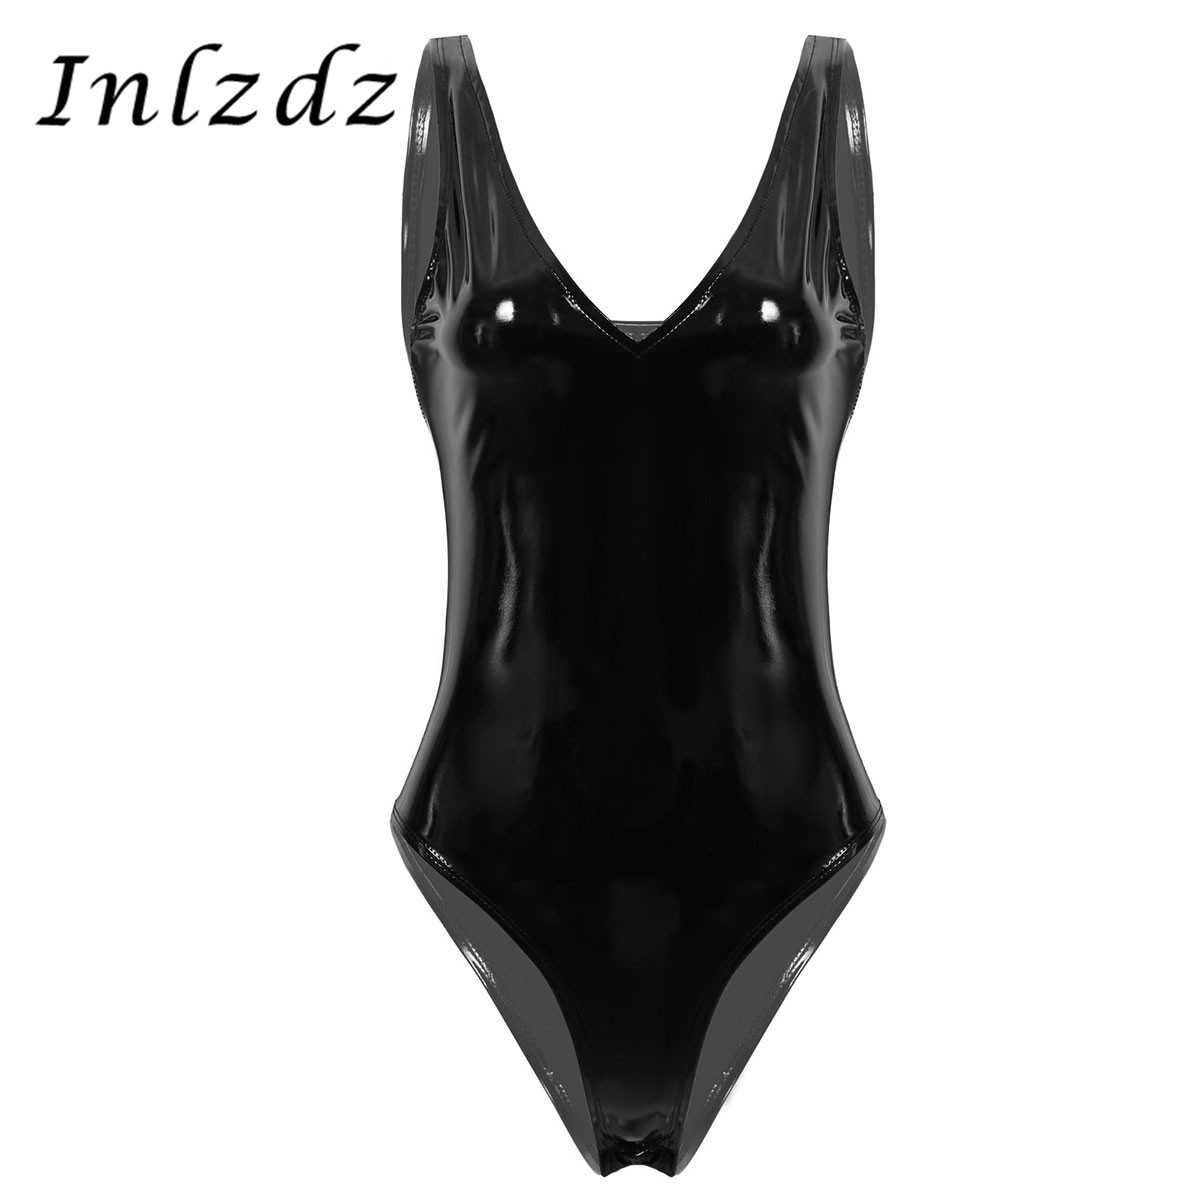 Women's Pole Dance Bodysuit One-piece Wet Look Patent Leather Deep V Neck Sleeveless High Cut Leotard Rave Bodysuit Tank Top